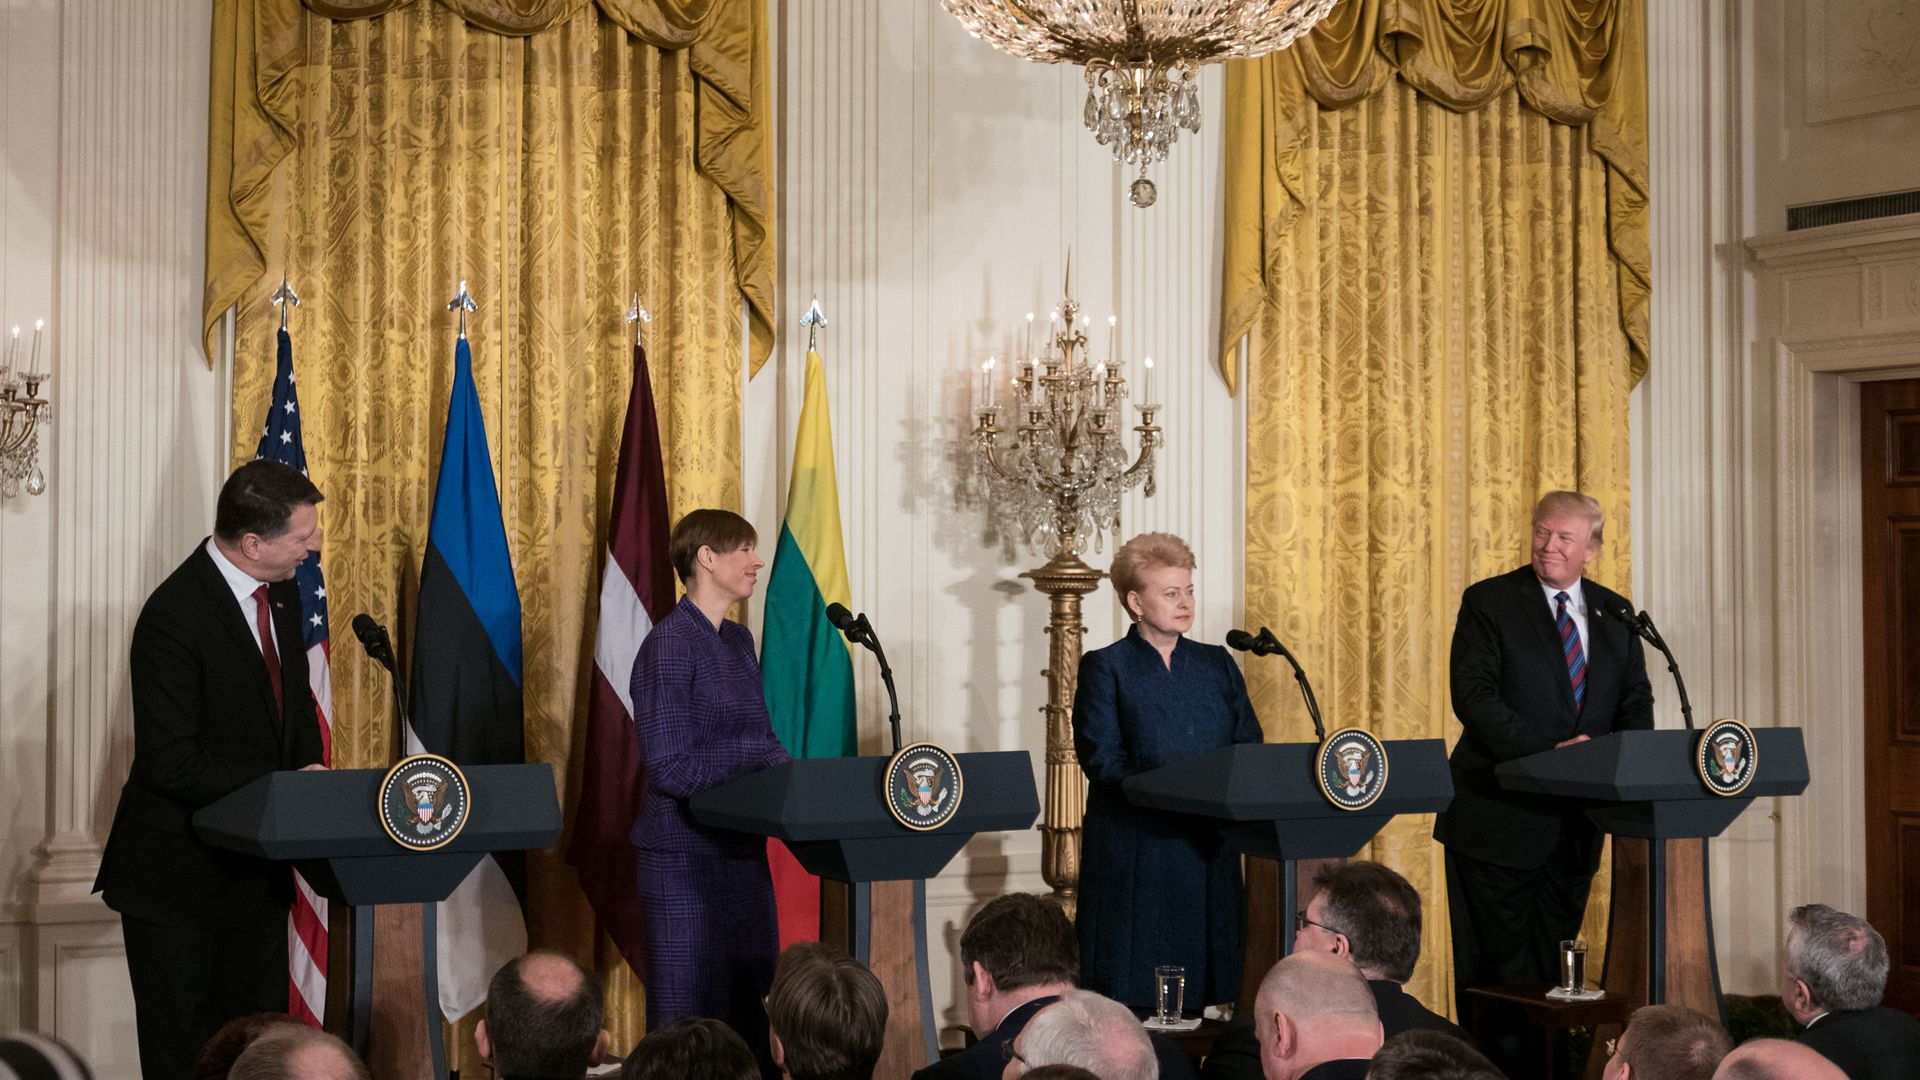 President Trump meets the Baltic heads of state during a summit at the White House on April 3, 2018.